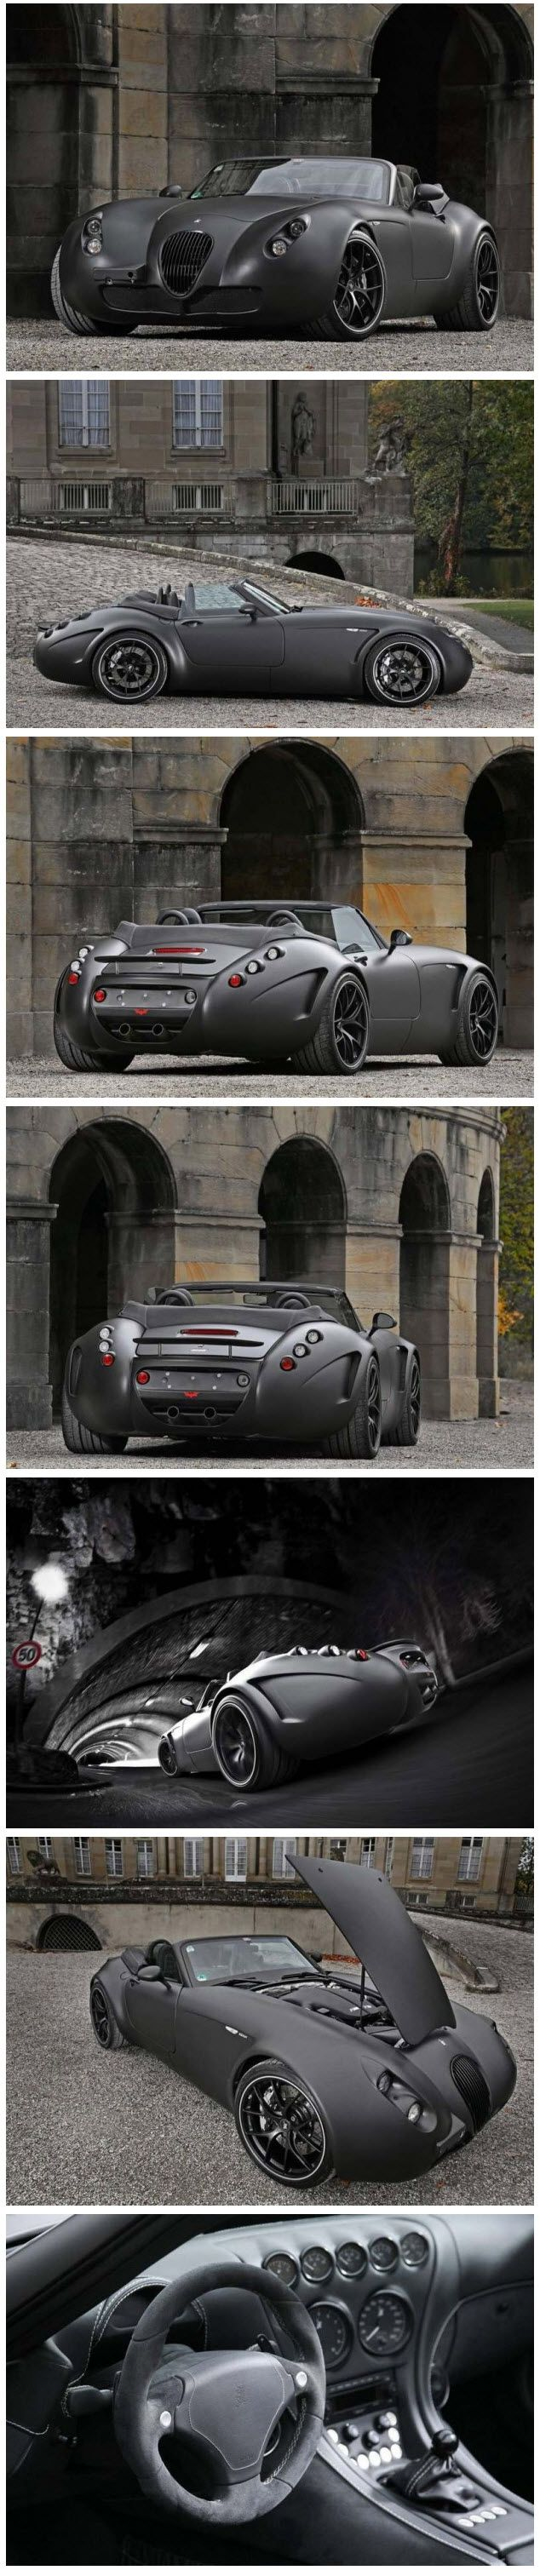 Wiesmann MF5 retro roadster.    SealingsAndExpungements.com 888-9-EXPUNGE (888-939-7864) 24/7 Free evaluation/Low money down/easy payments 'Seal past mistakes. Open new opportunities.'